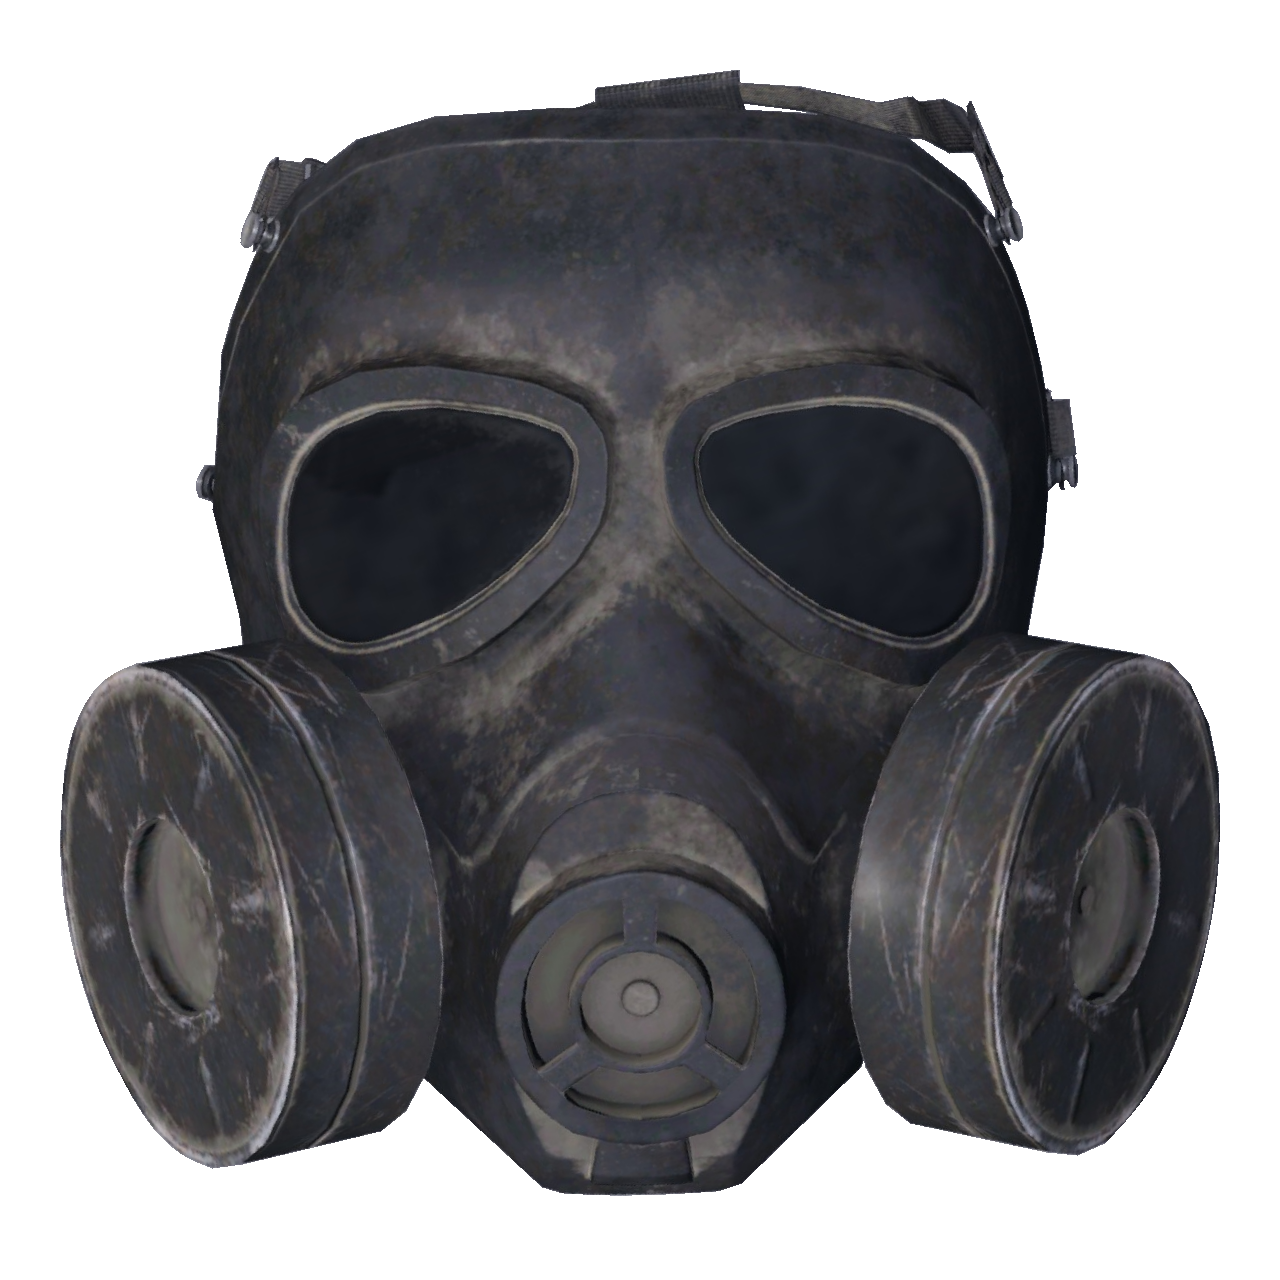 Gas mask png. Image miscreated wiki fandom